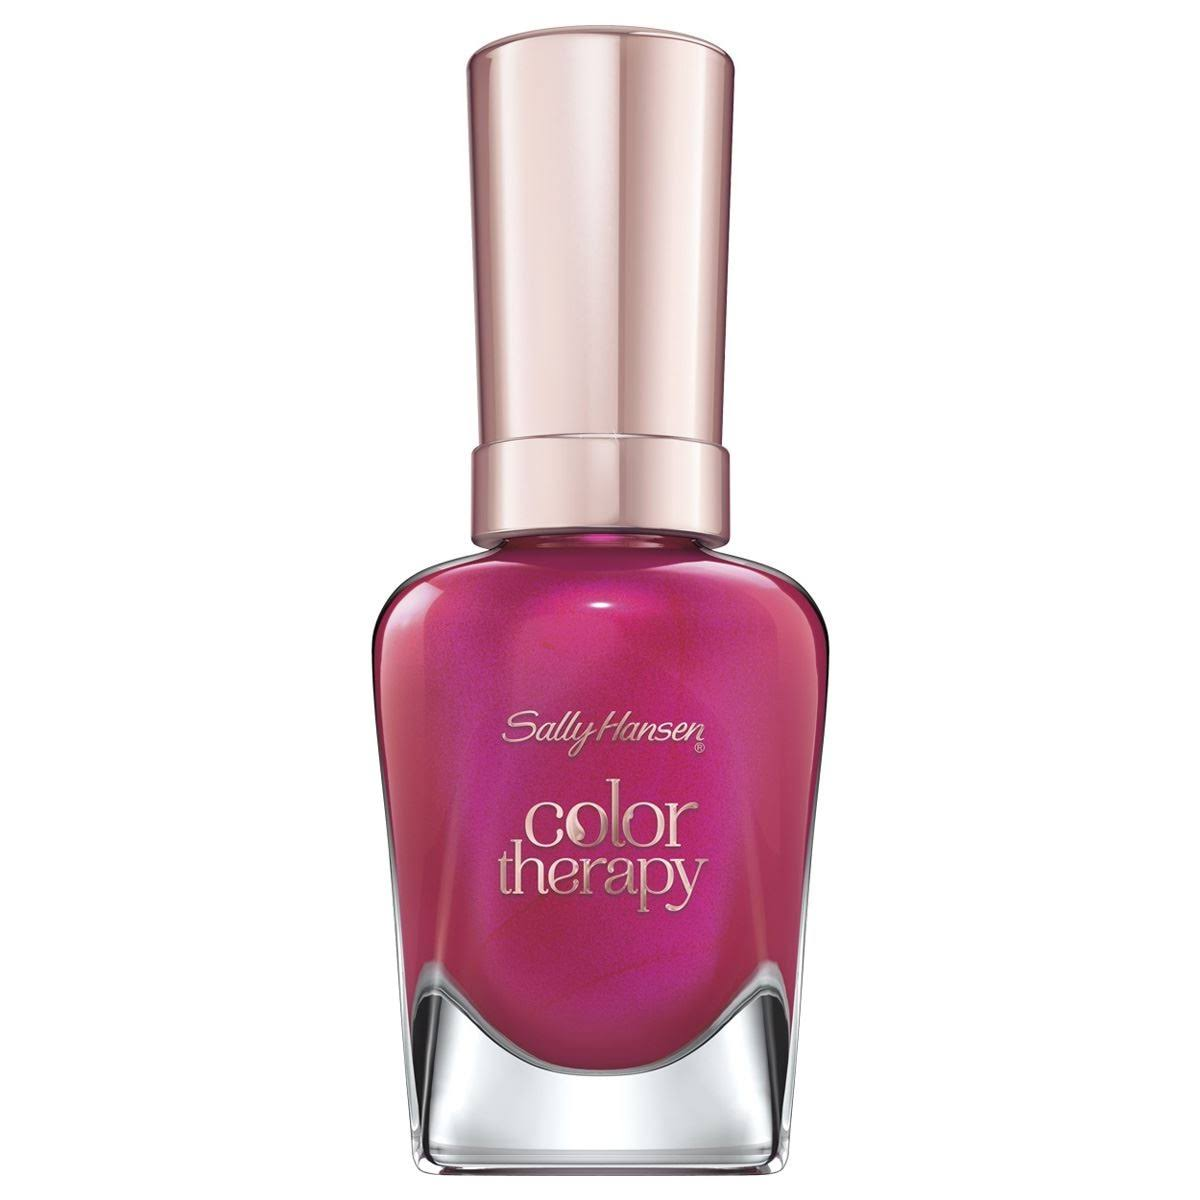 Sally Hansen Color Therapy Nail Colour - 250 Rosy Glow, 14.7ml